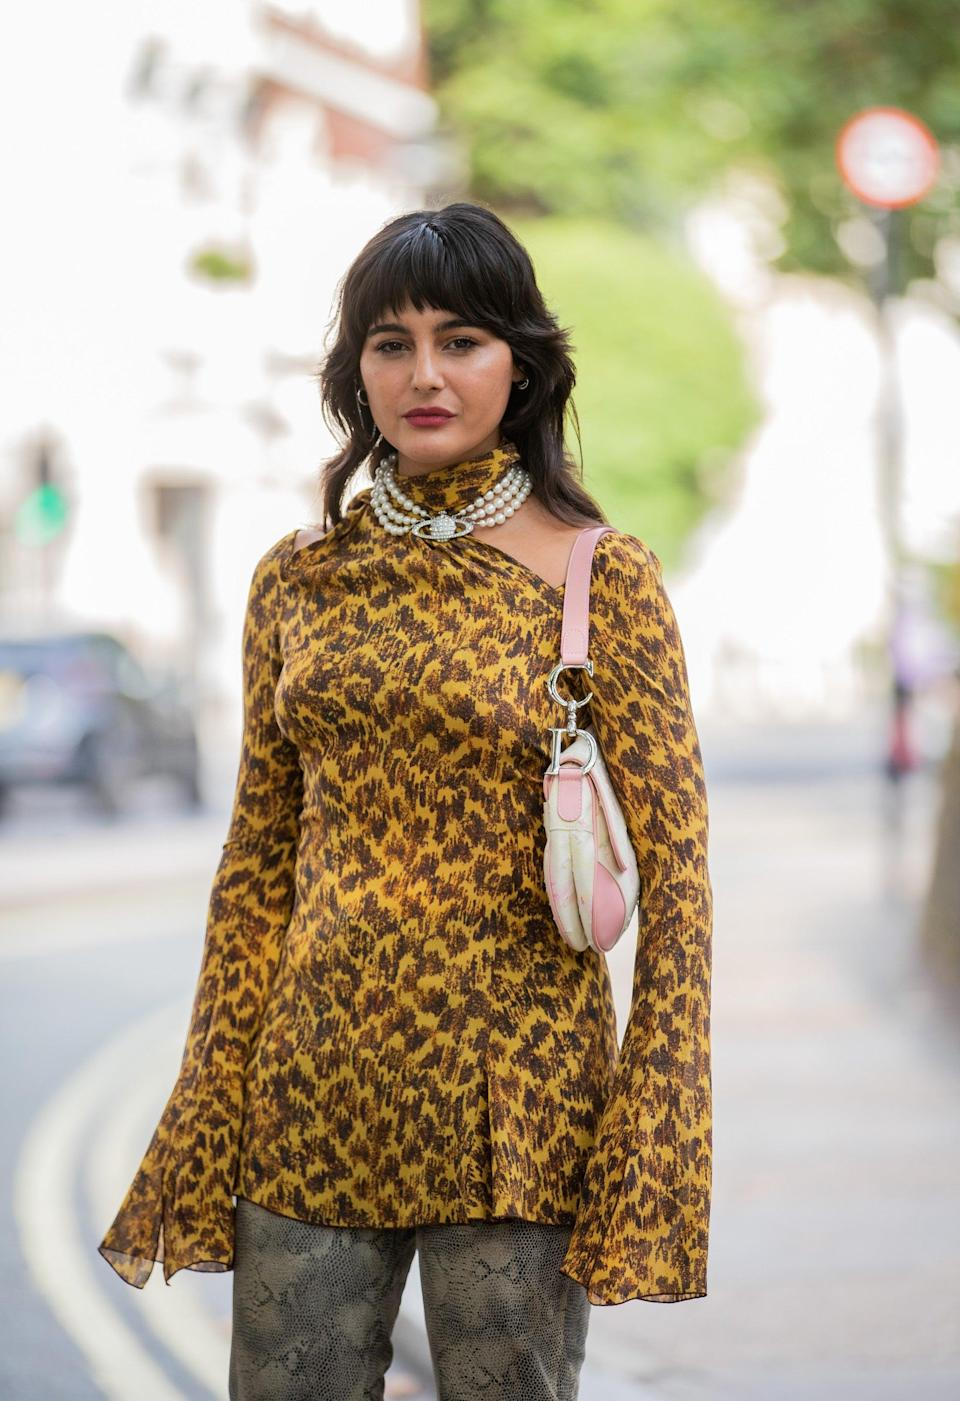 """Stylist and fashion brand owner María Bernad also embraces mismatched patterns beautifully. We love the chunky Vivienne Westwood necklace, too. <span class=""""copyright"""">Photo Courtesy of Christian Vierig/Getty Images.</span>"""